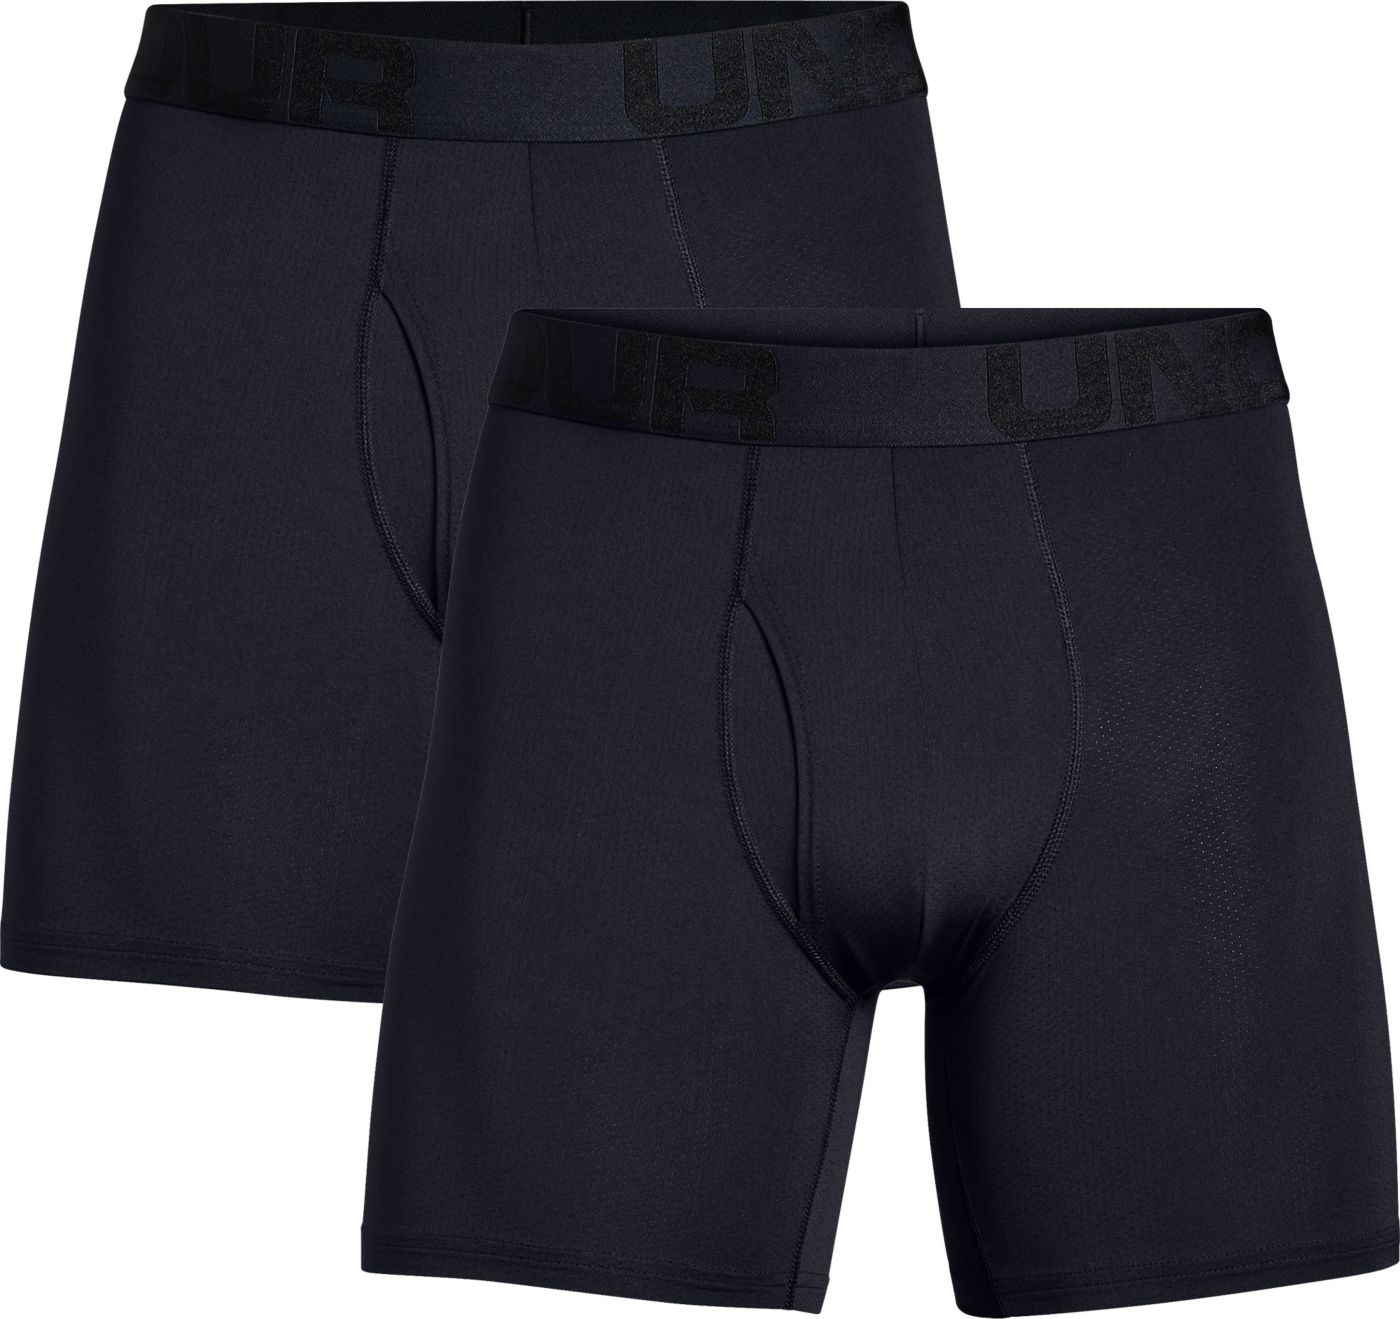 Under Armour Men's Tech Mesh 6'' Boxer Briefs - 2 Pack (Regular and Big & Tall)